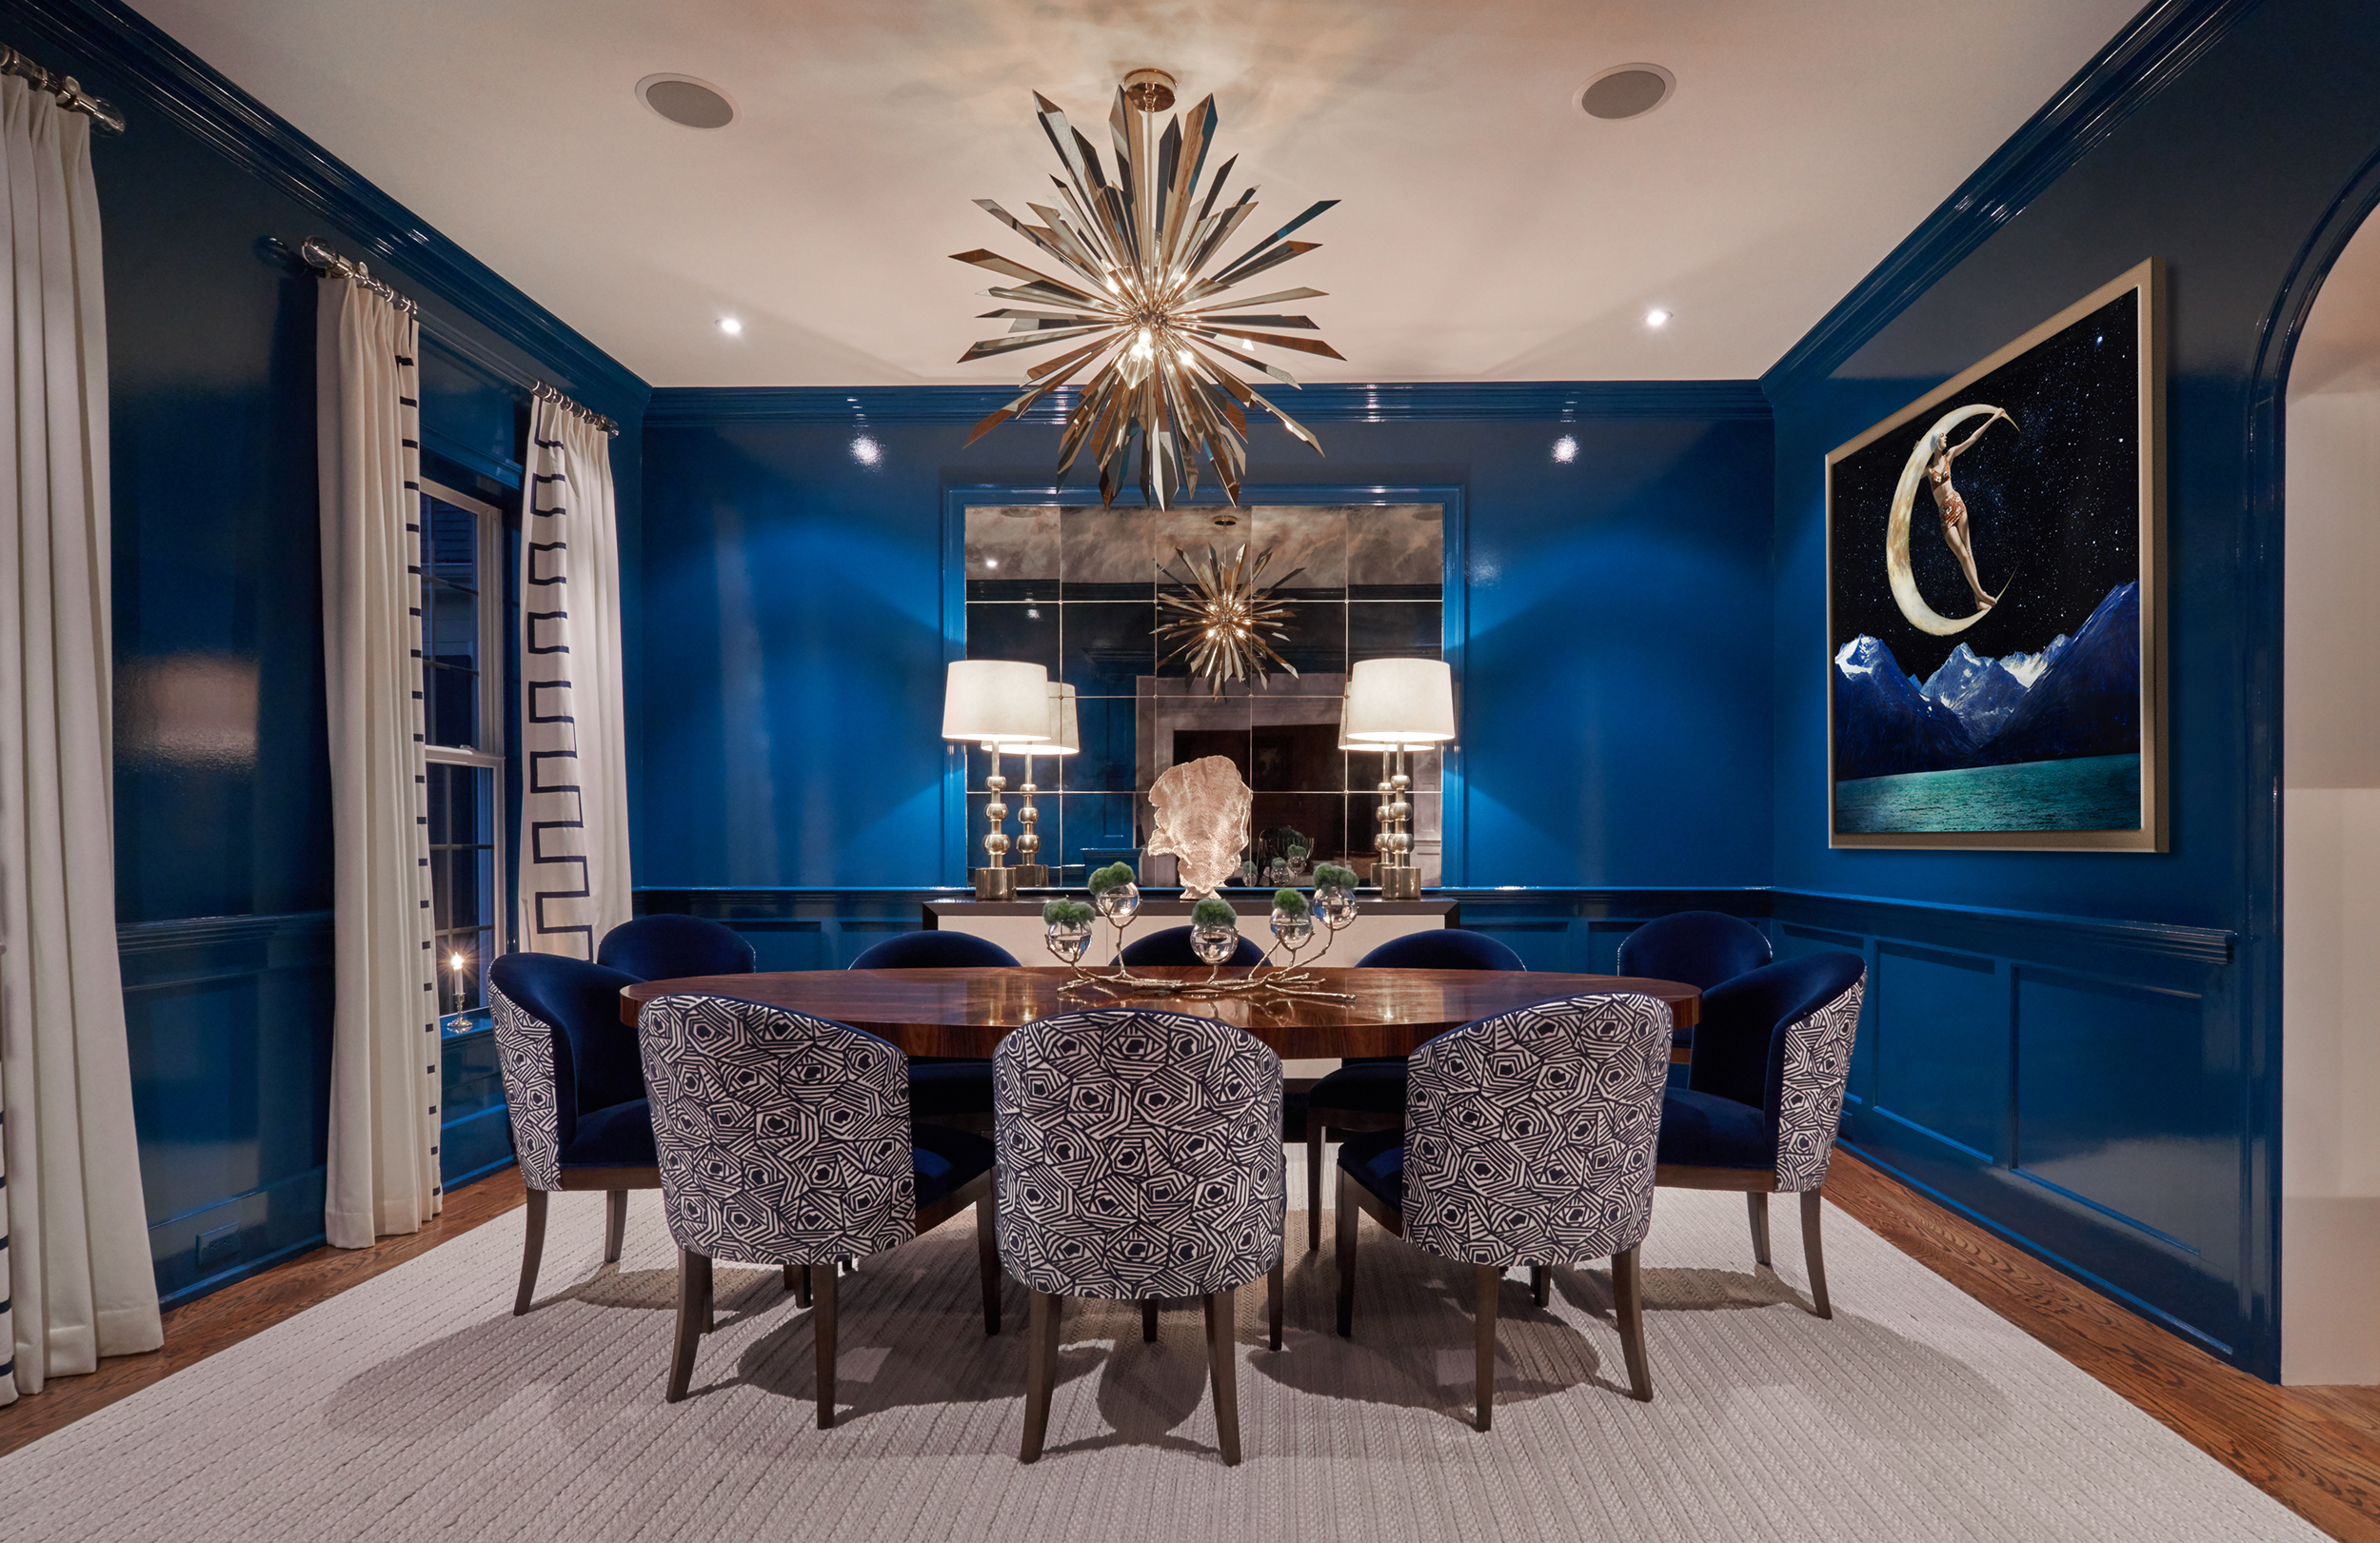 Lacquer walls, mokum fabric, keith fritz, artistic frame, vaughn lighting, antique mirror panels, curtain detail, blue lacquer, blue velvet, lucite window hardware